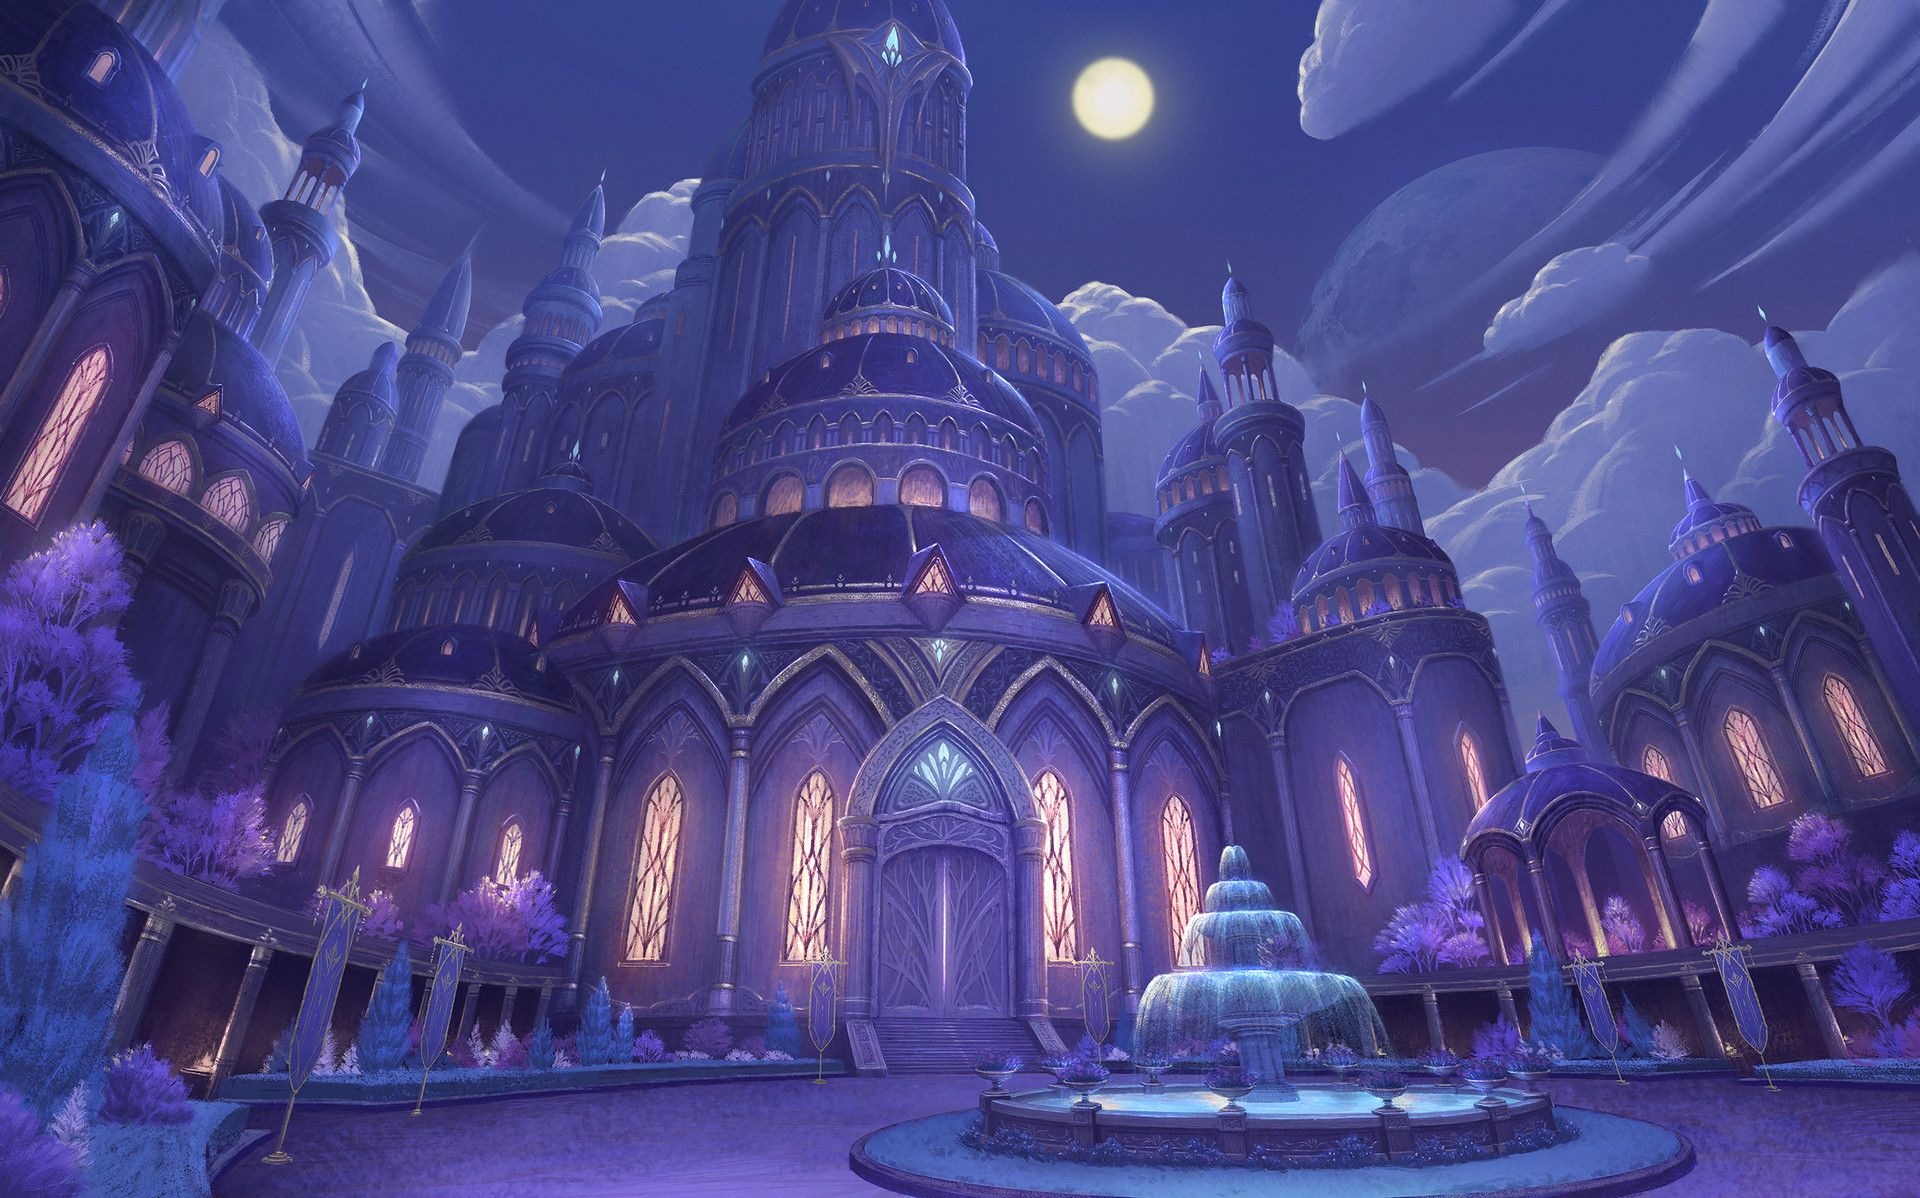 39 Blade 39 Concept Art Theme04 Elysion Temple Of Light Mobile Action Rpg Project Copyright 2014 201 Anime Places Anime Scenery Wallpaper Fantasy City